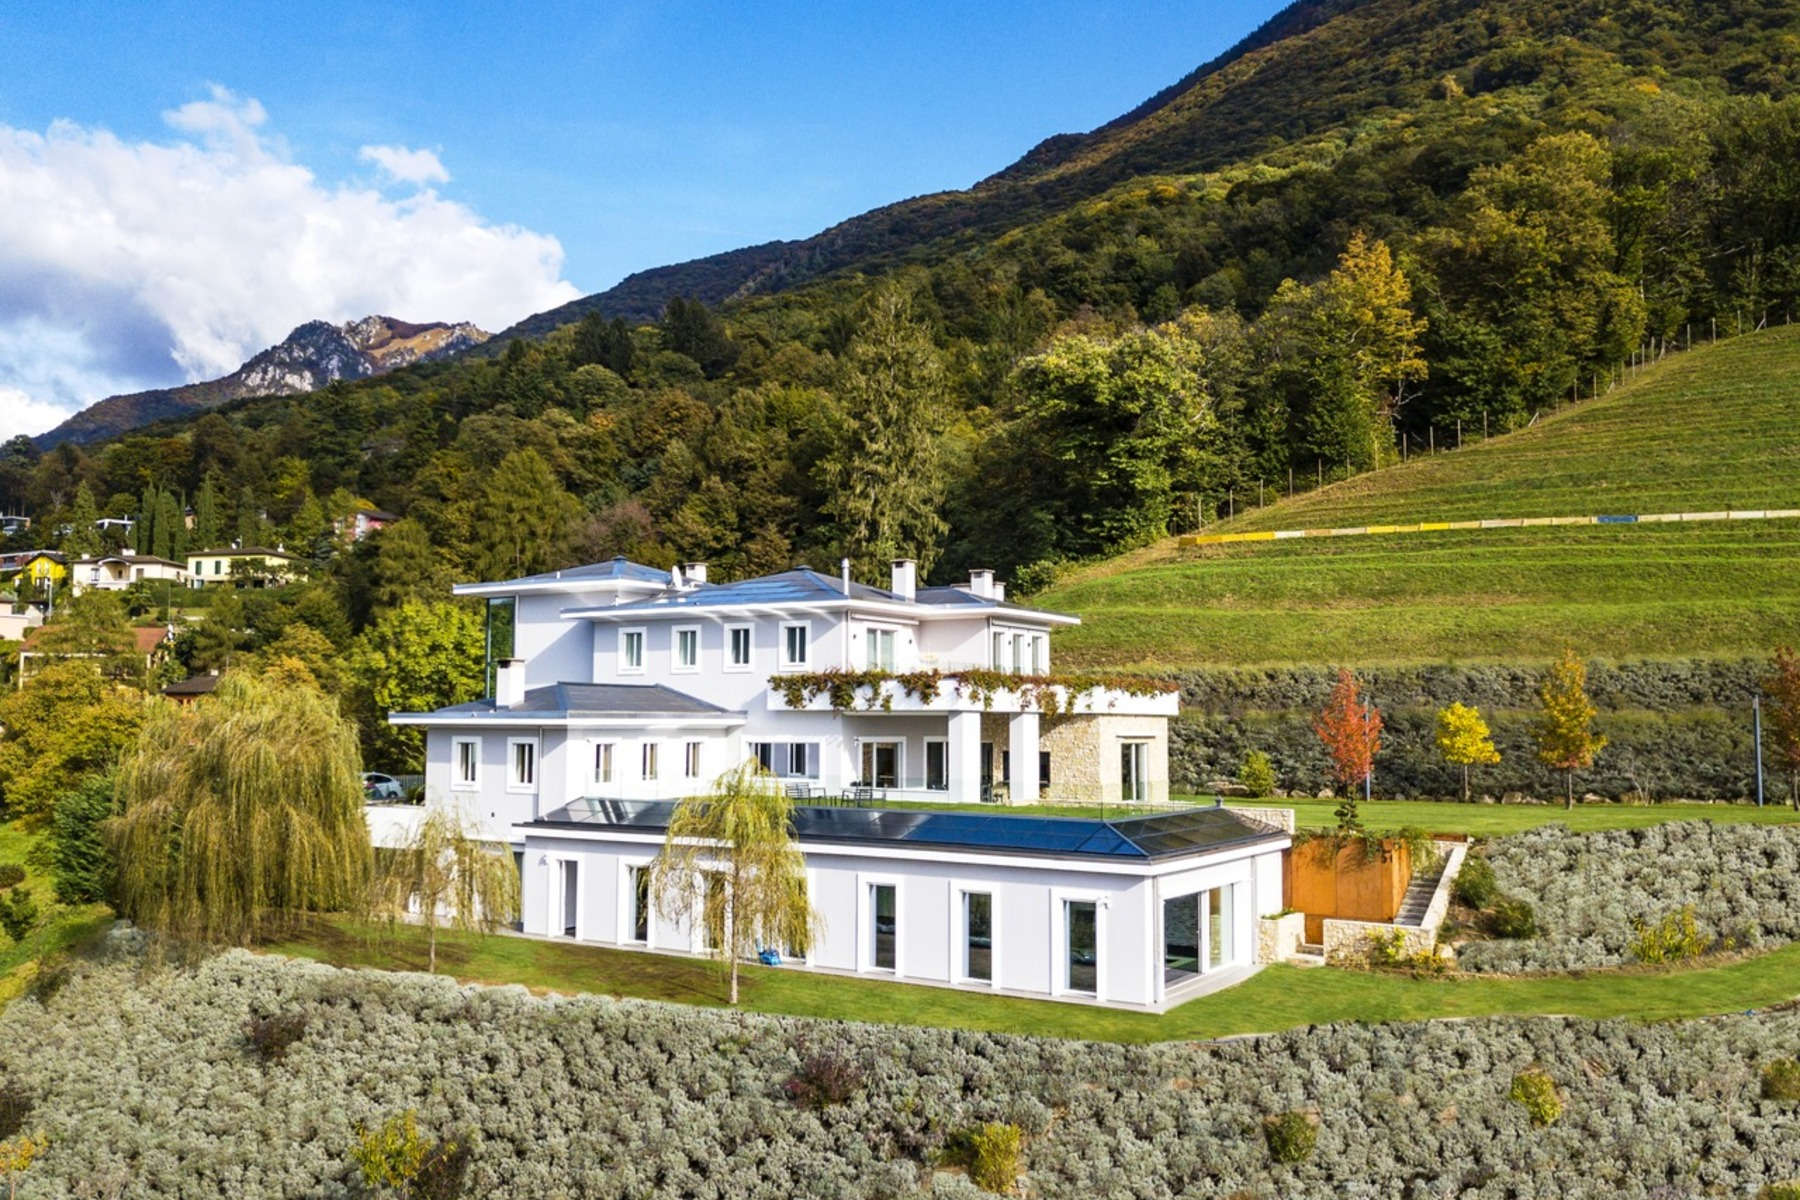 Single Family Homes for Sale at Luxury Villa with 15-acres of private land Lugano Lugano, Ticino 6900 Switzerland